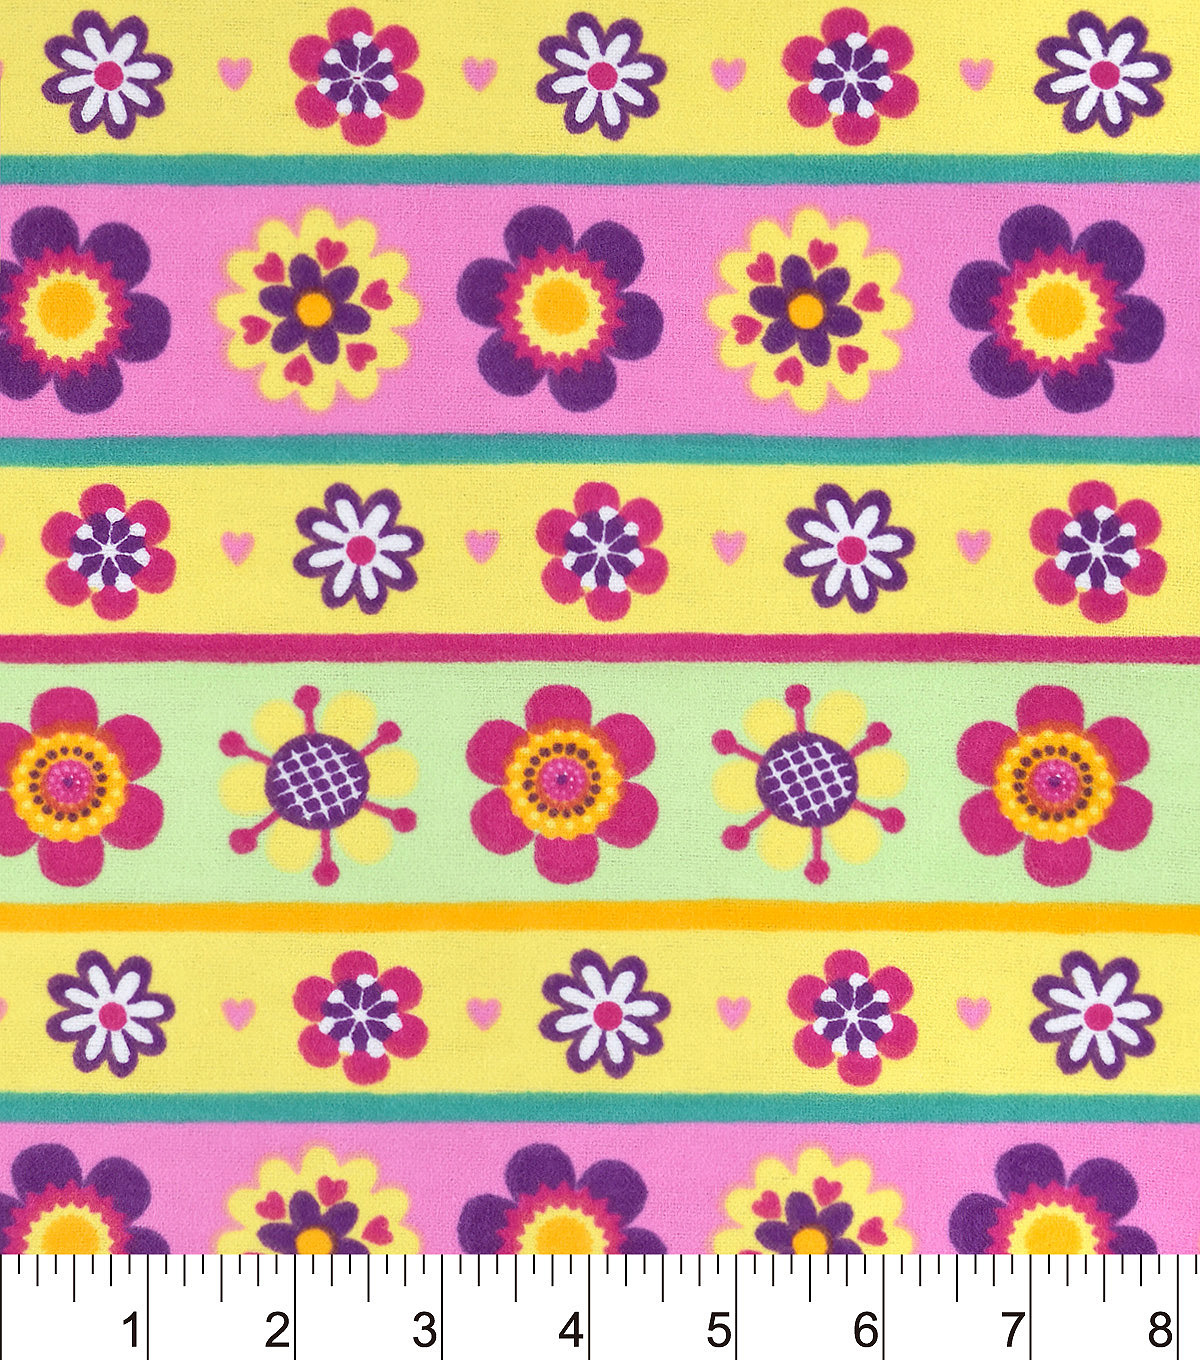 Snuggle Flannel Fabric -Flower Power Stripe